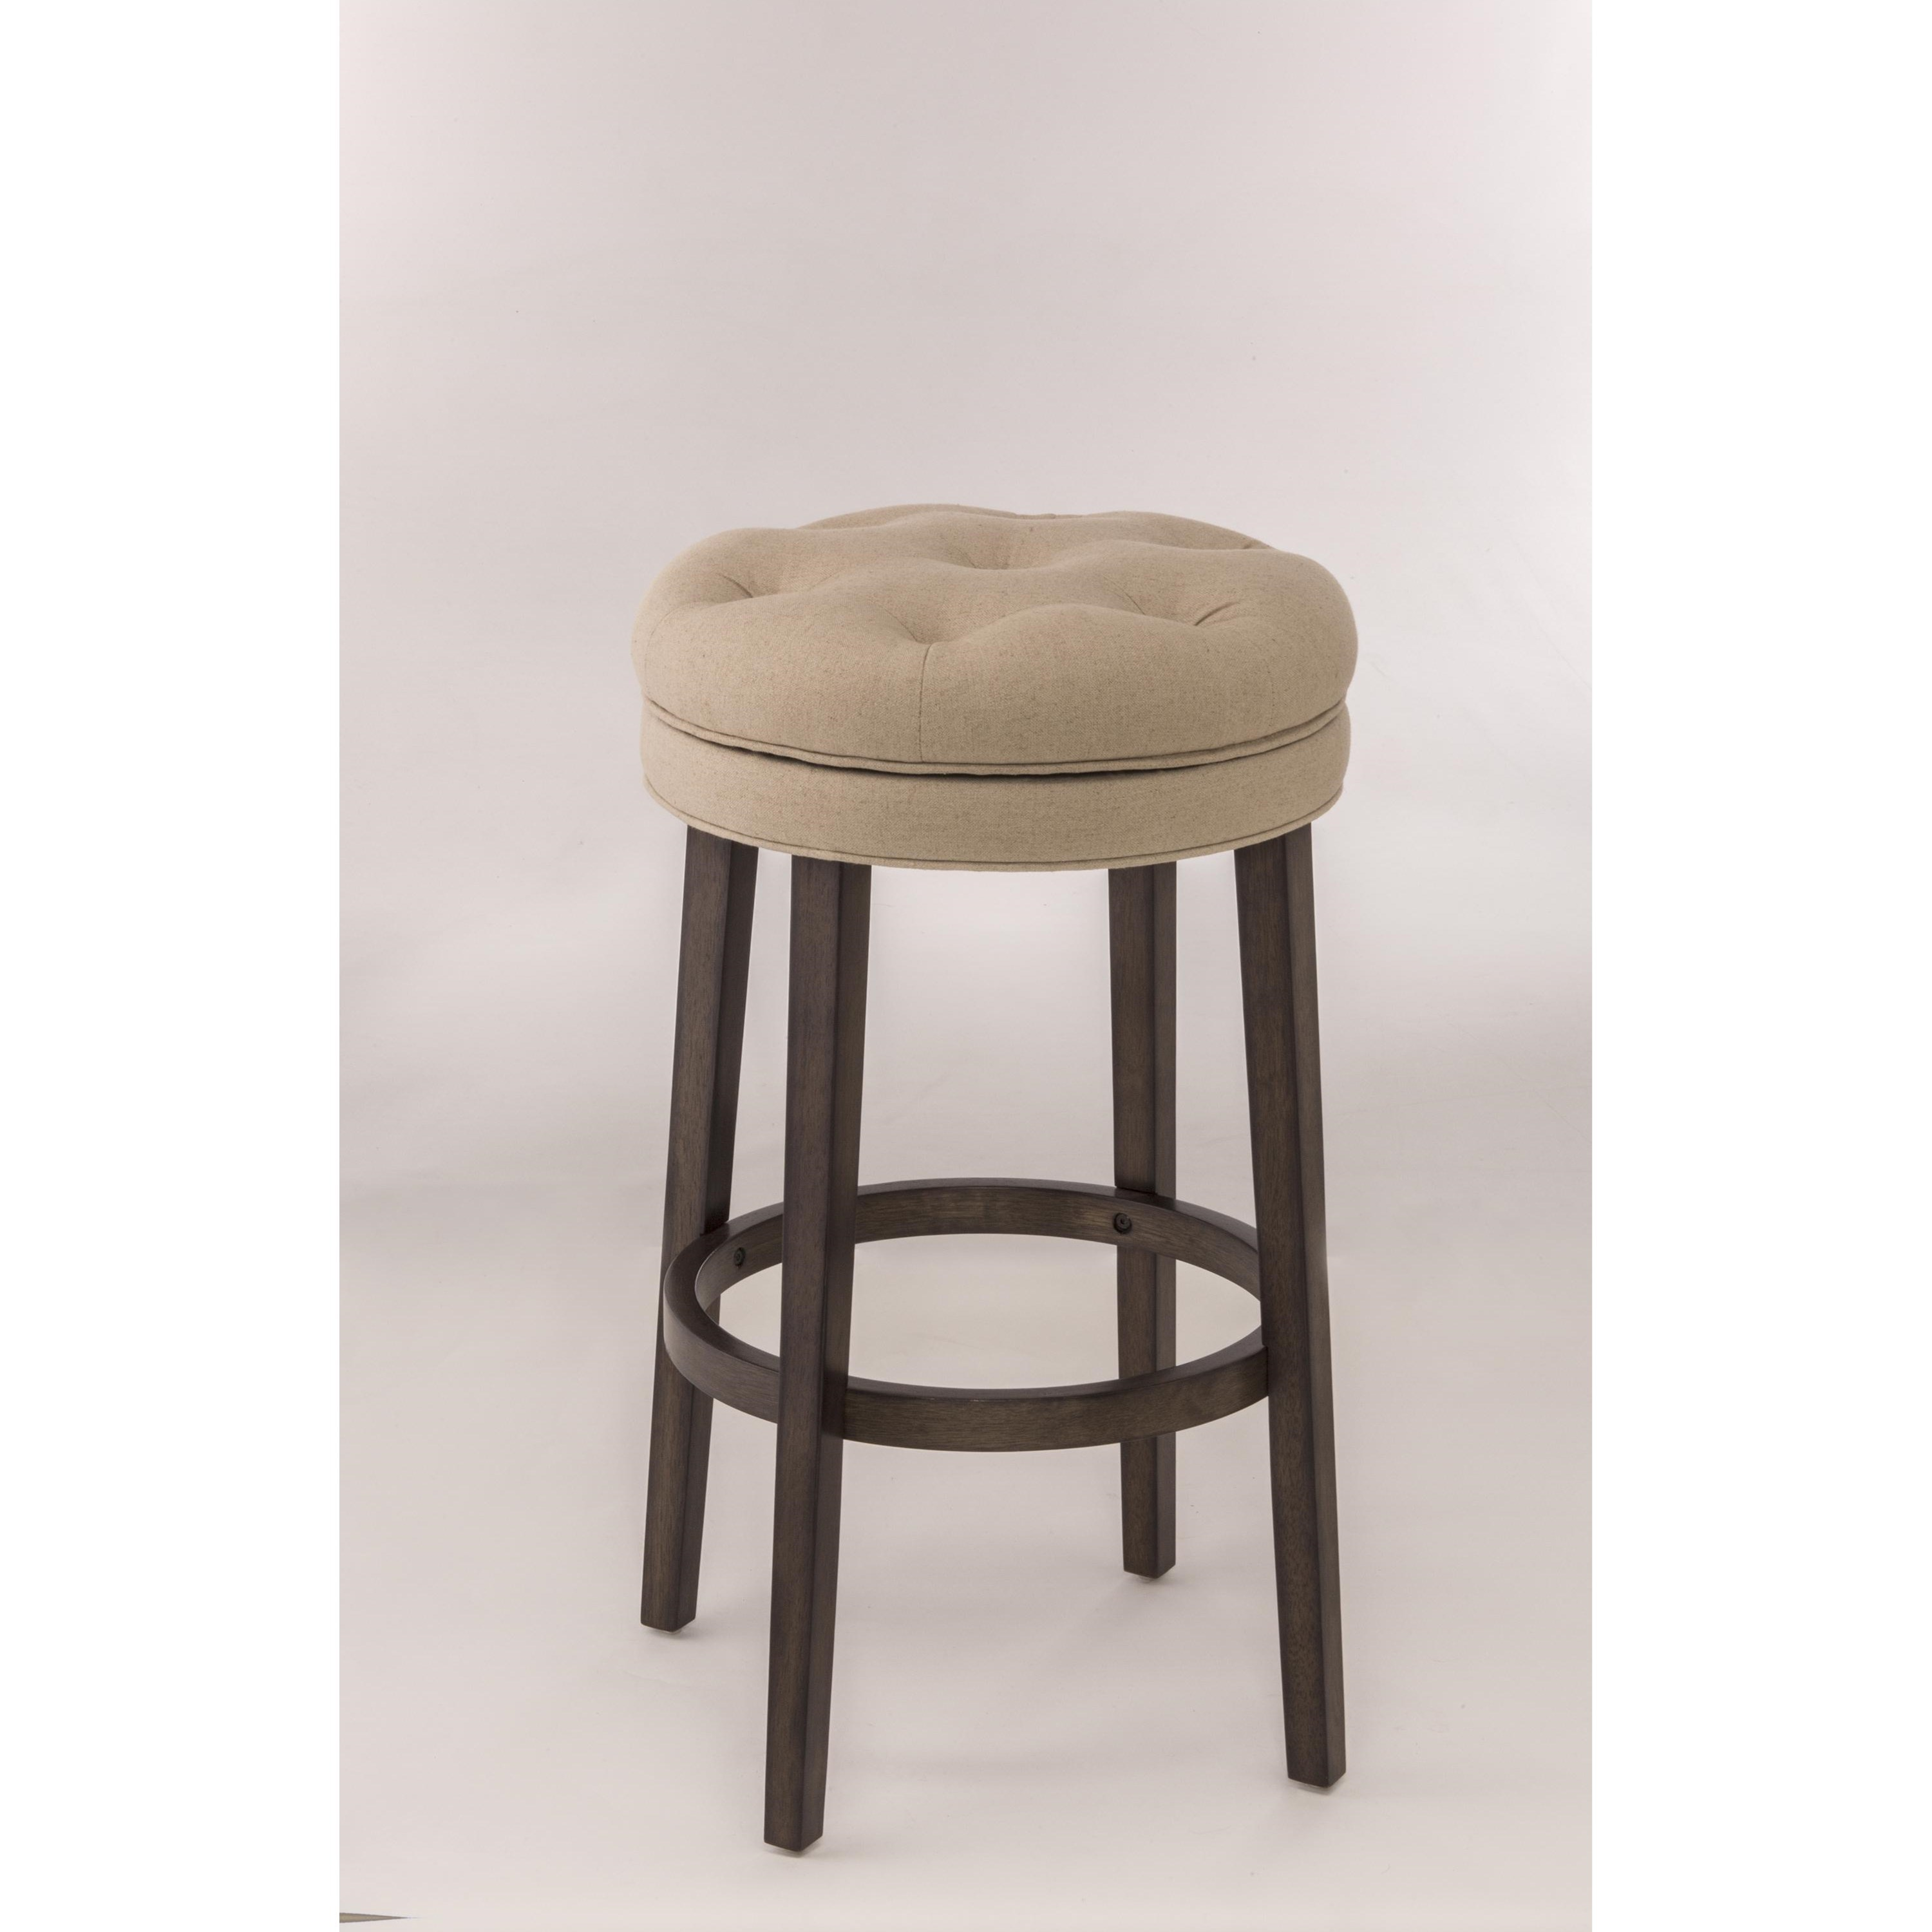 Hillsdale backless bar stools 5914 825 backless swivel for Backless bar stools